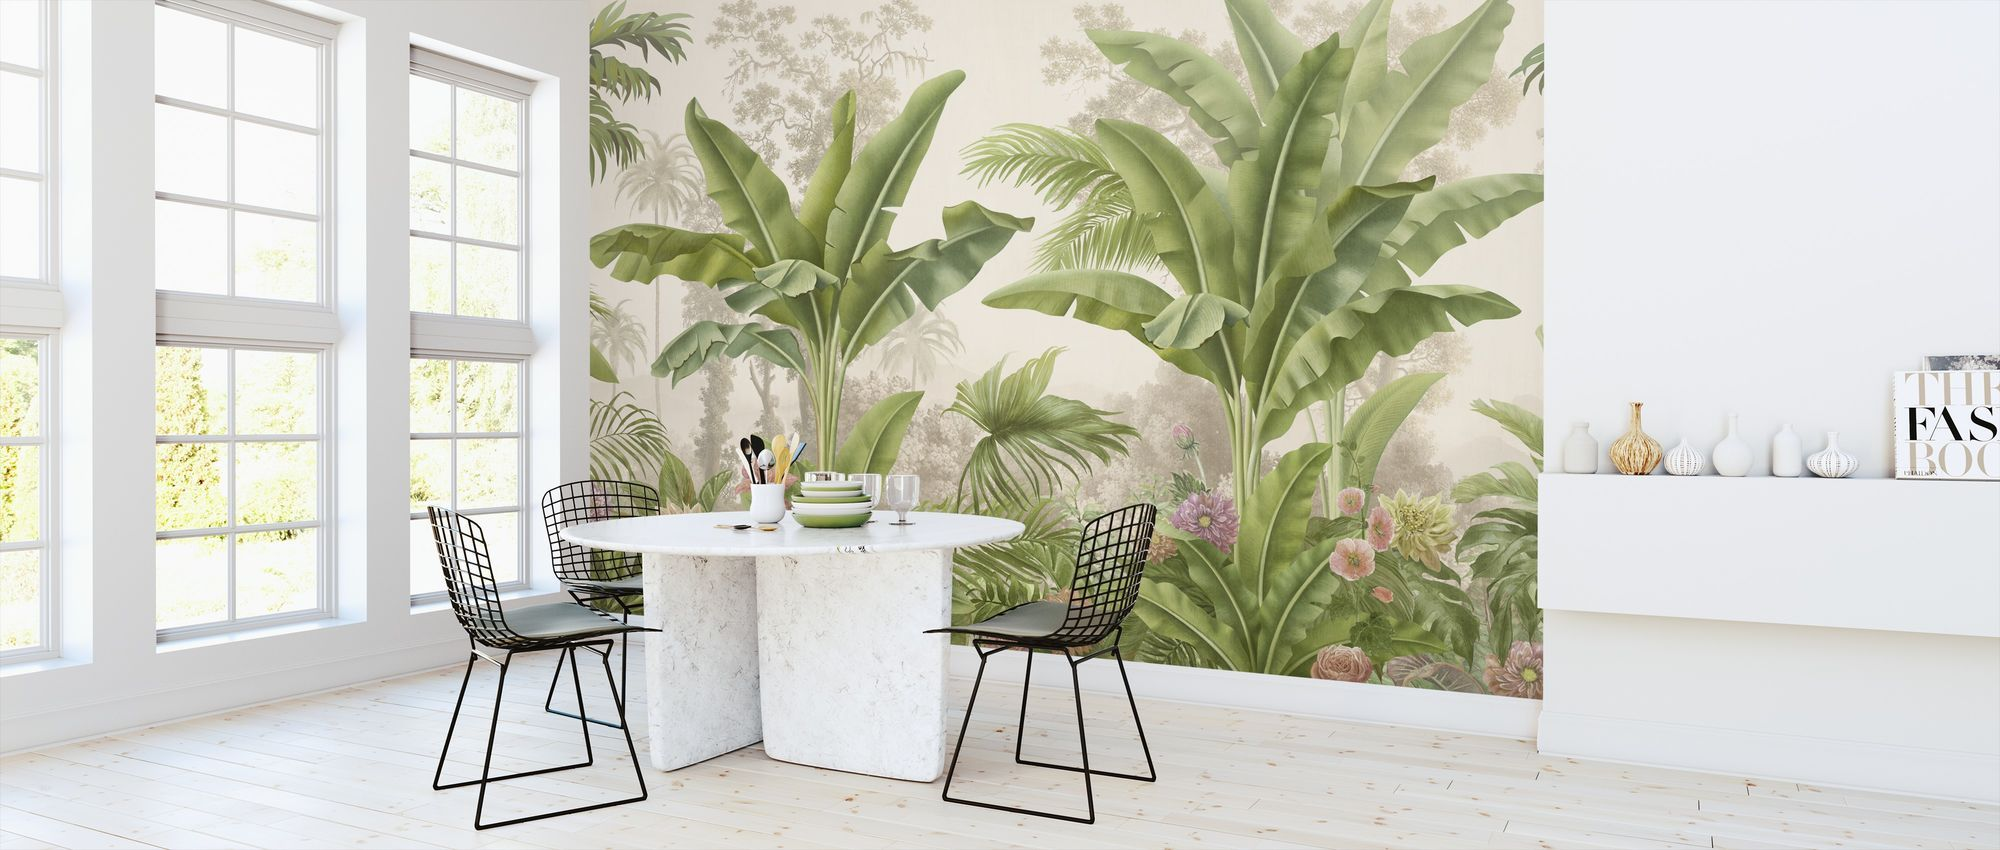 Tropical Bliss High Quality Wall Murals With Free Us Delivery Photowall In 2020 Wall Murals Green Wallpaper Wall Wallpaper